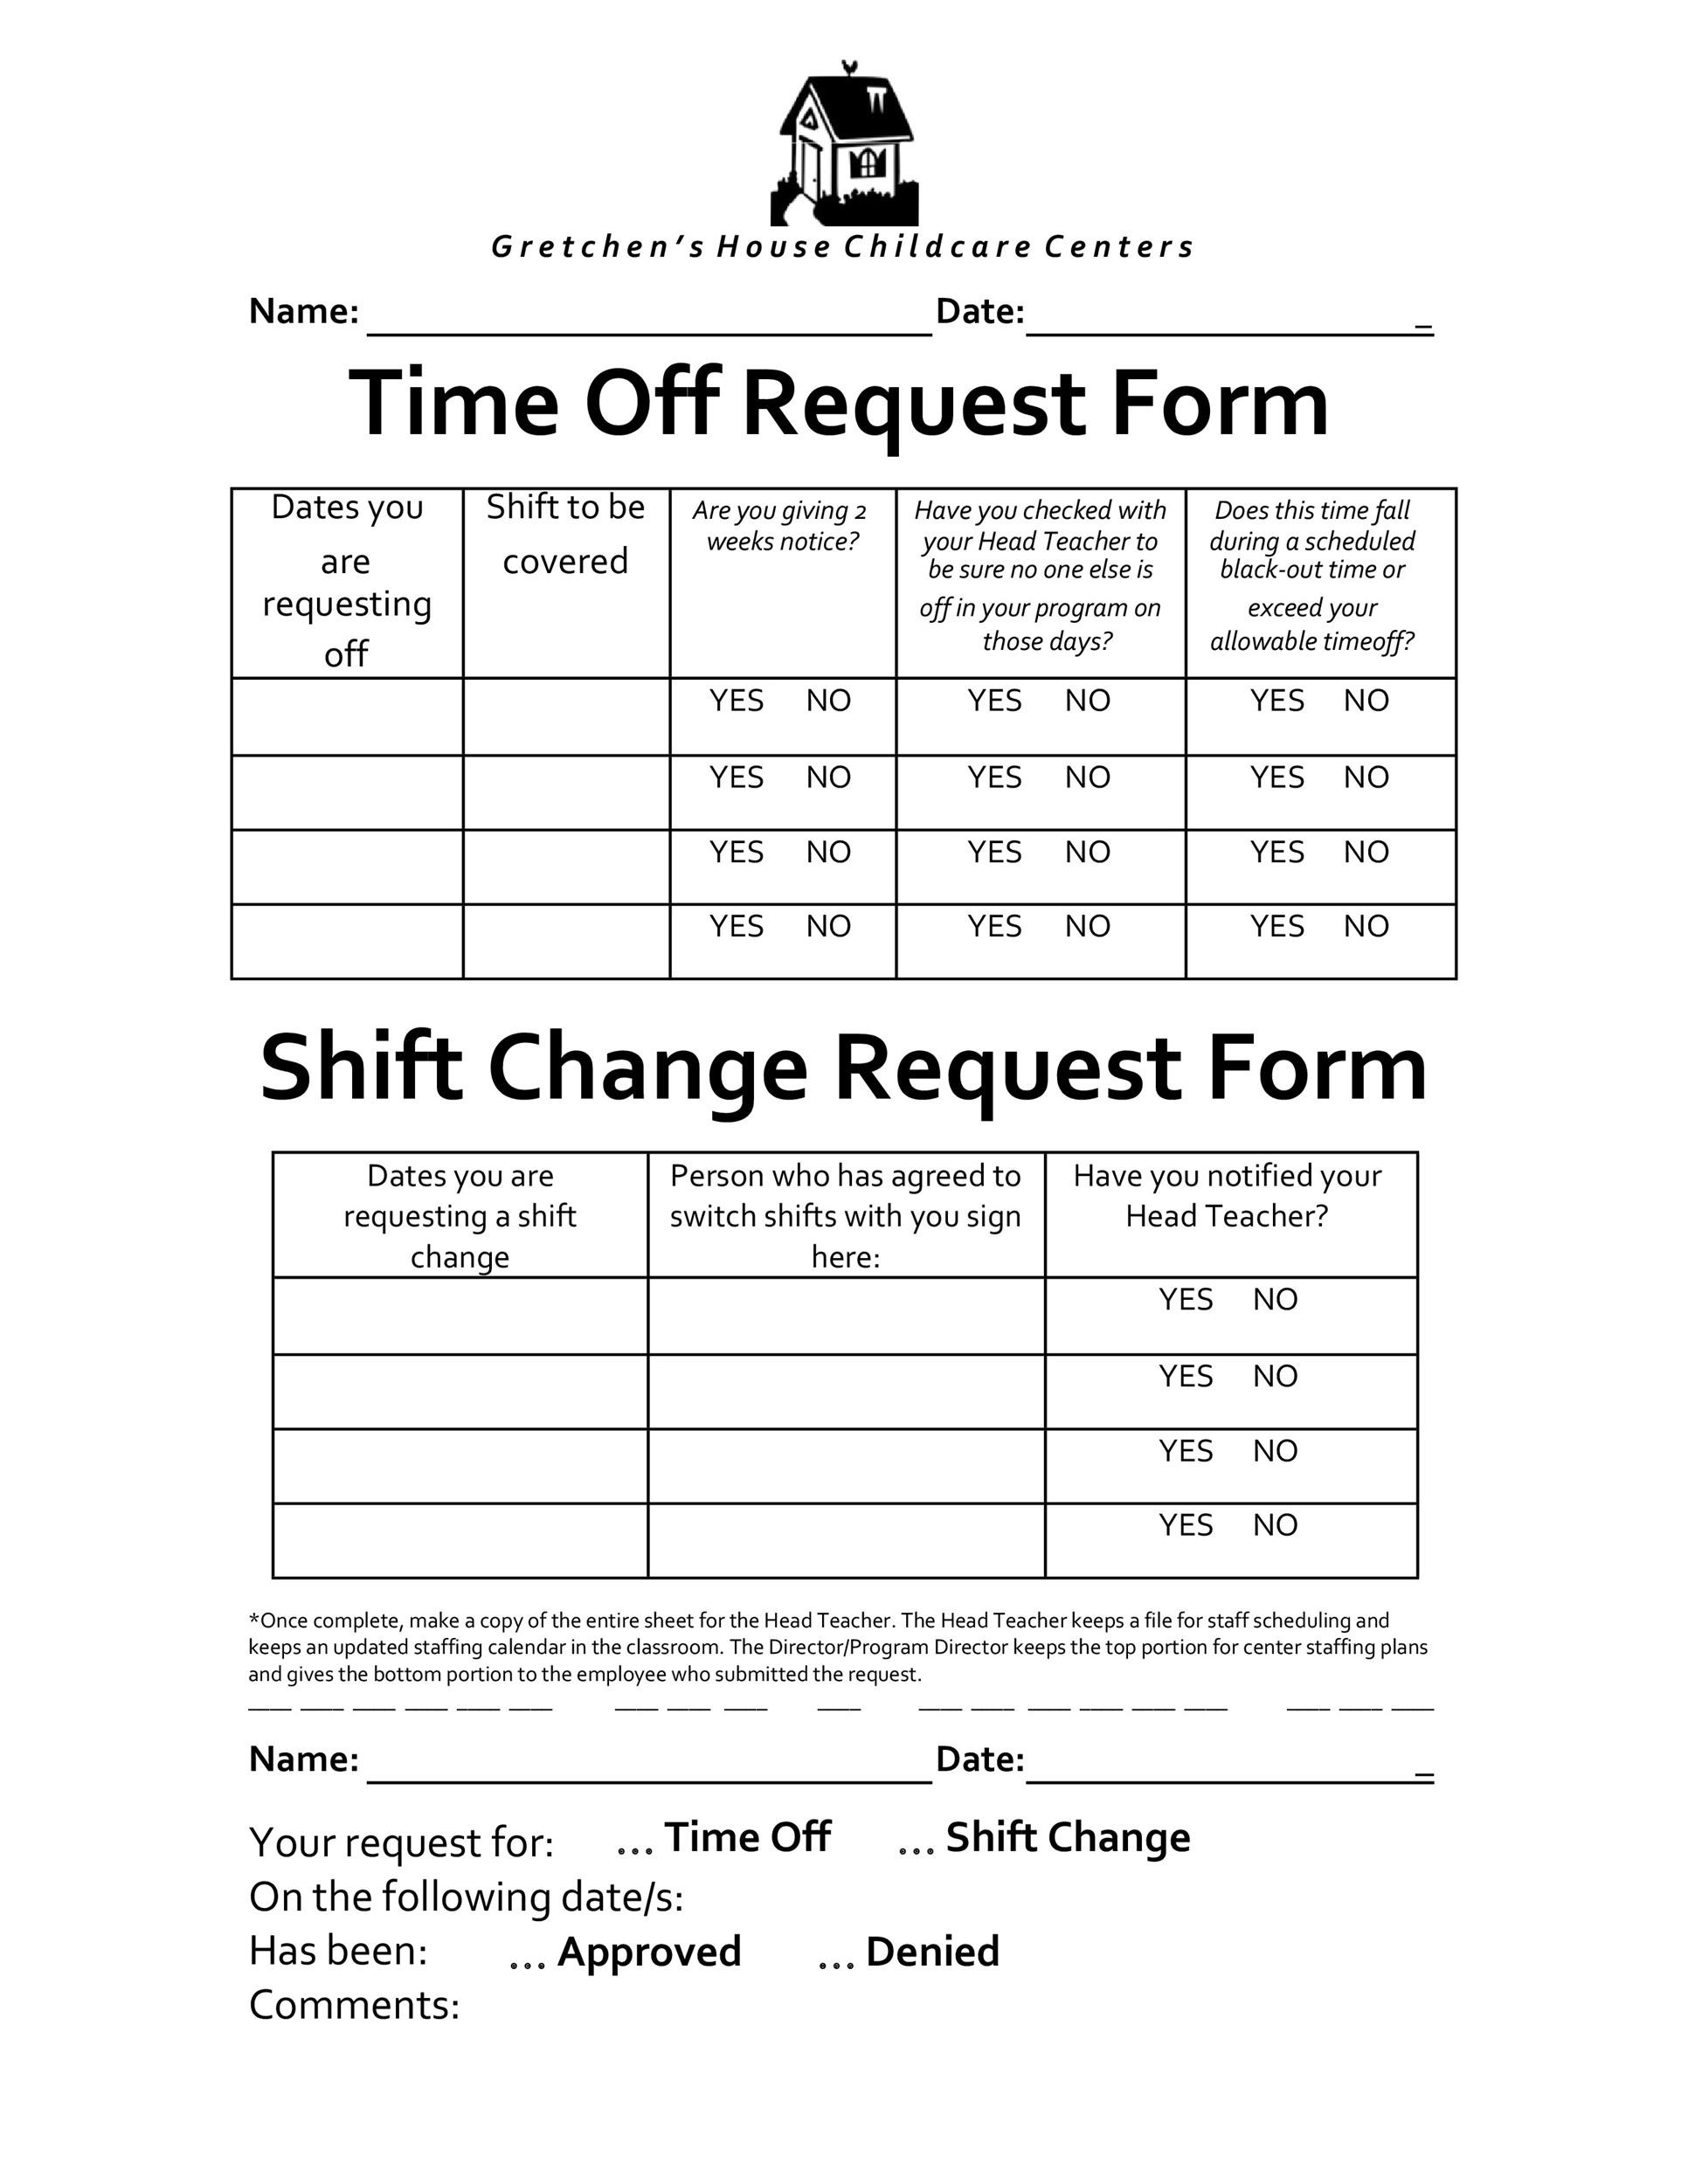 40 Effective Time Off Request Forms Templates Template Lab – Holiday Request Form